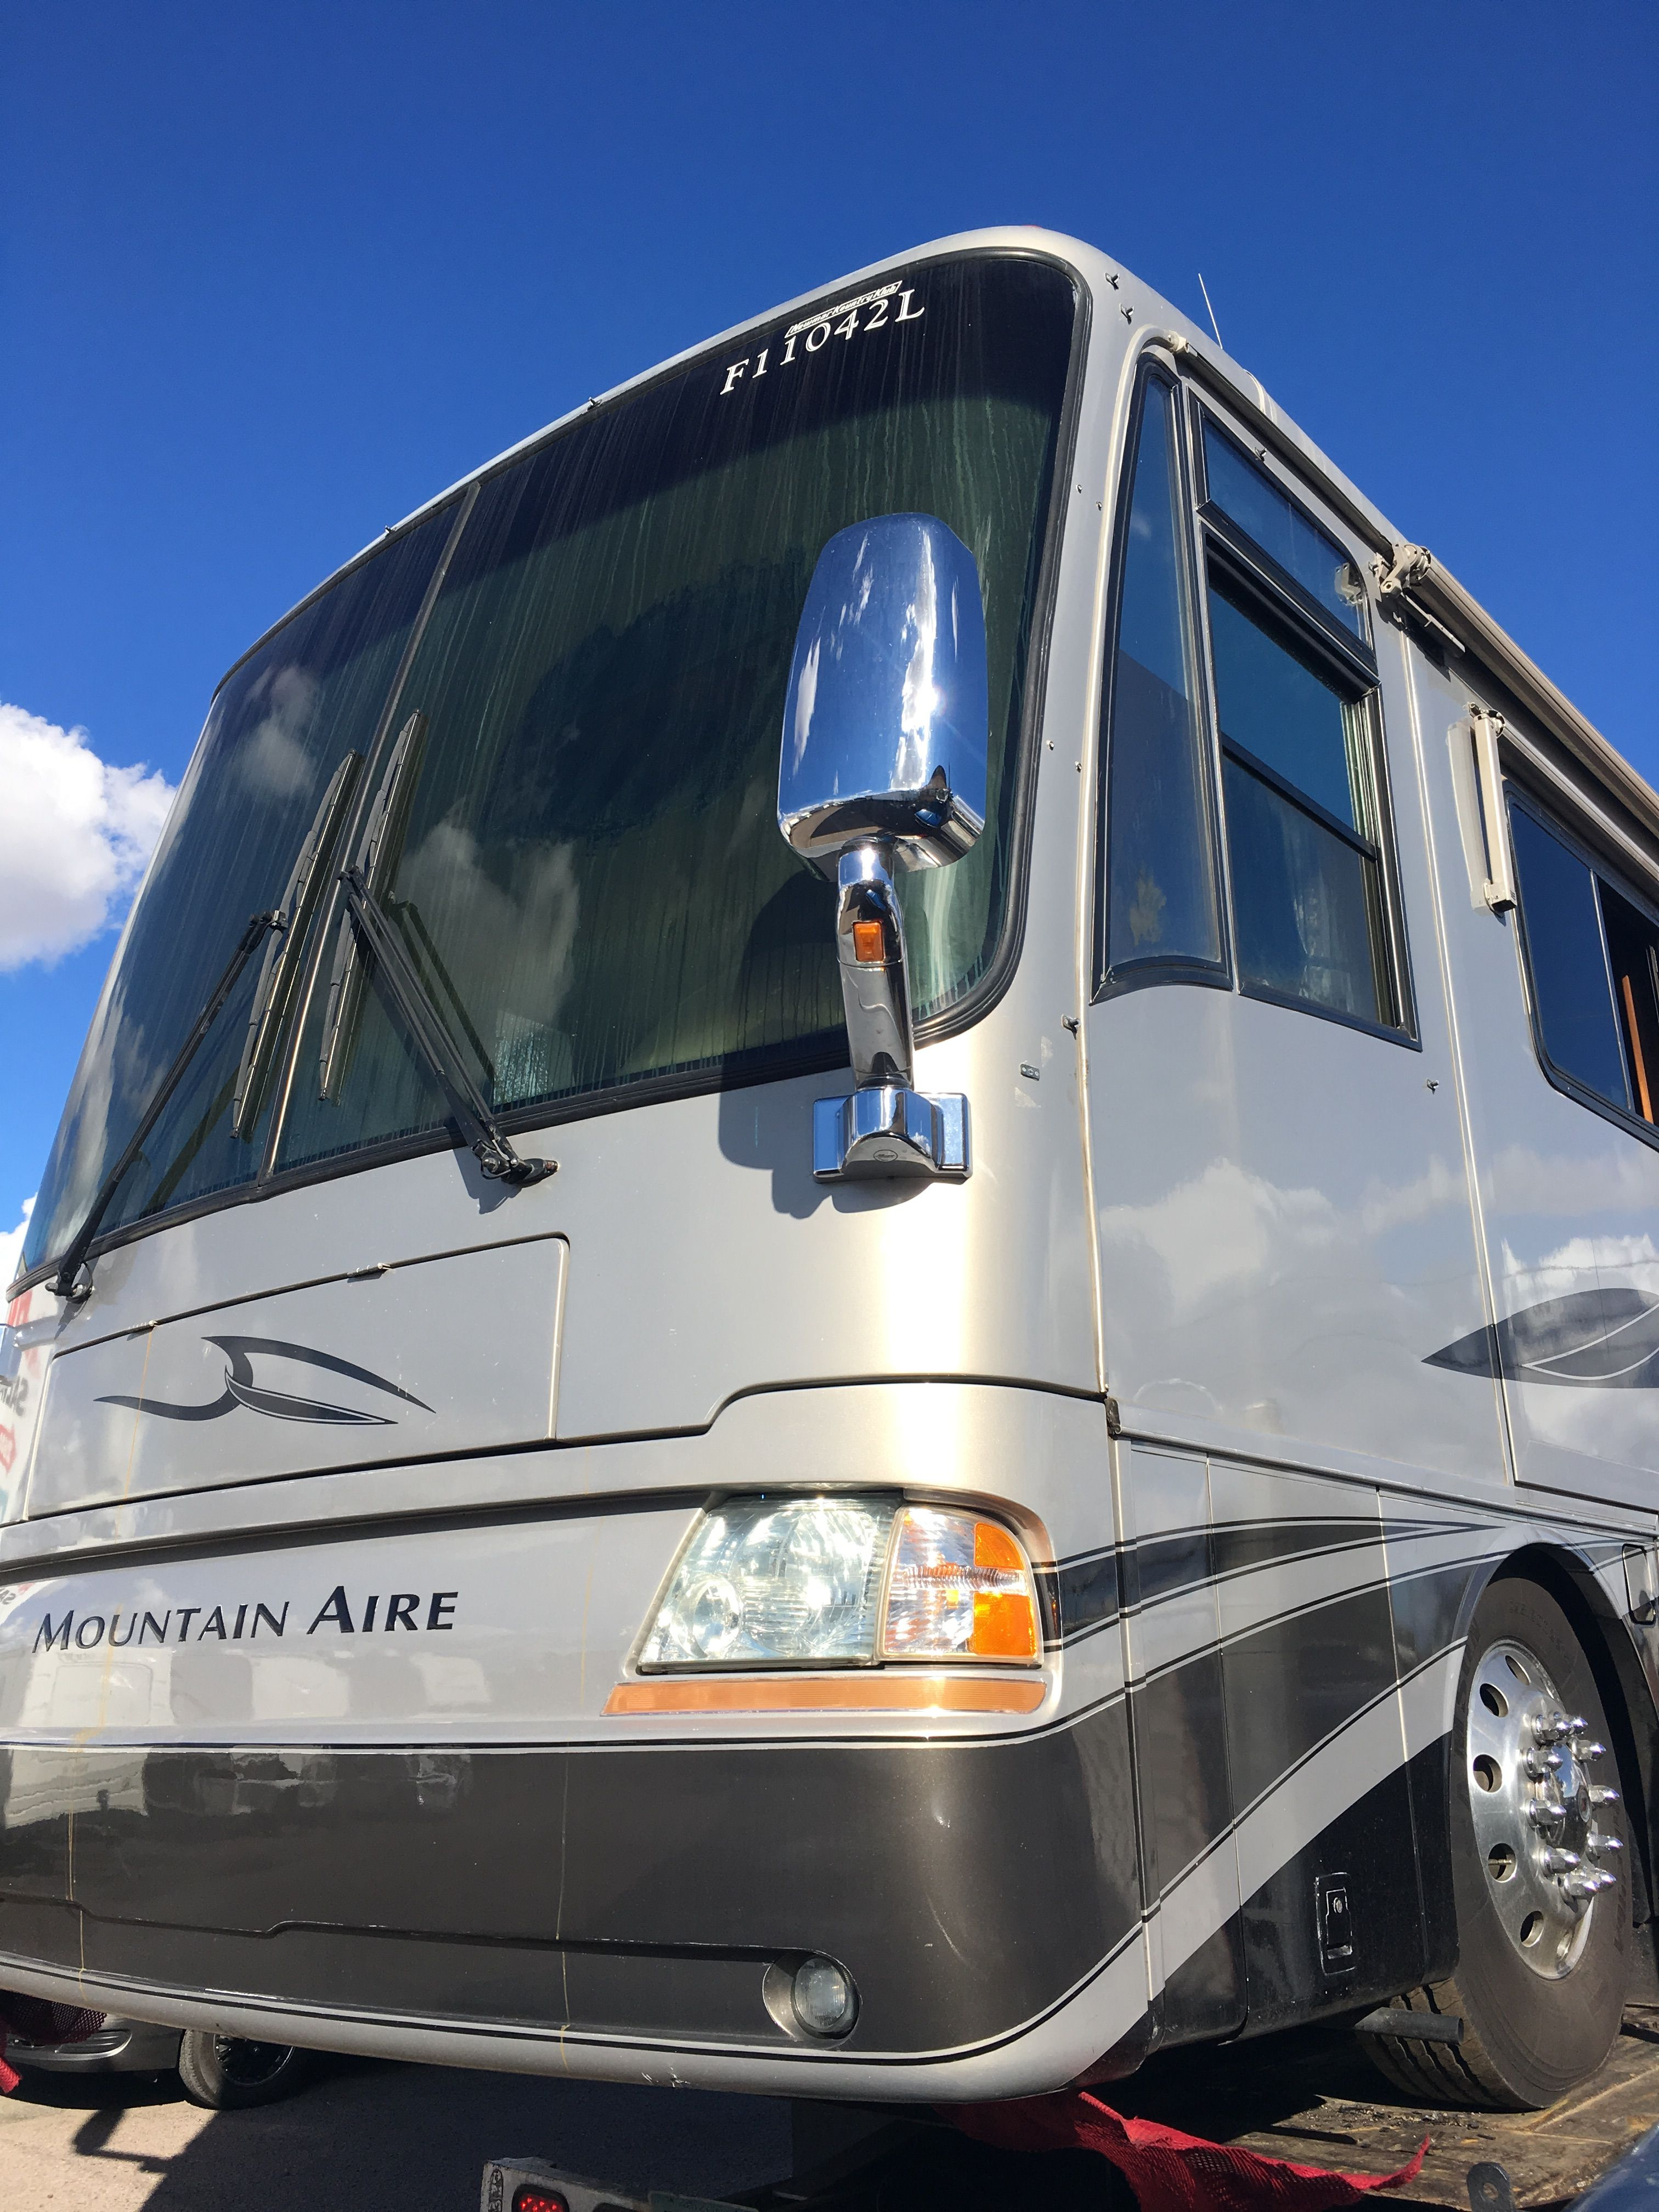 Mountain Aire by Newmar | AZ RV SALVAGE | Rv parts, Salvage parts